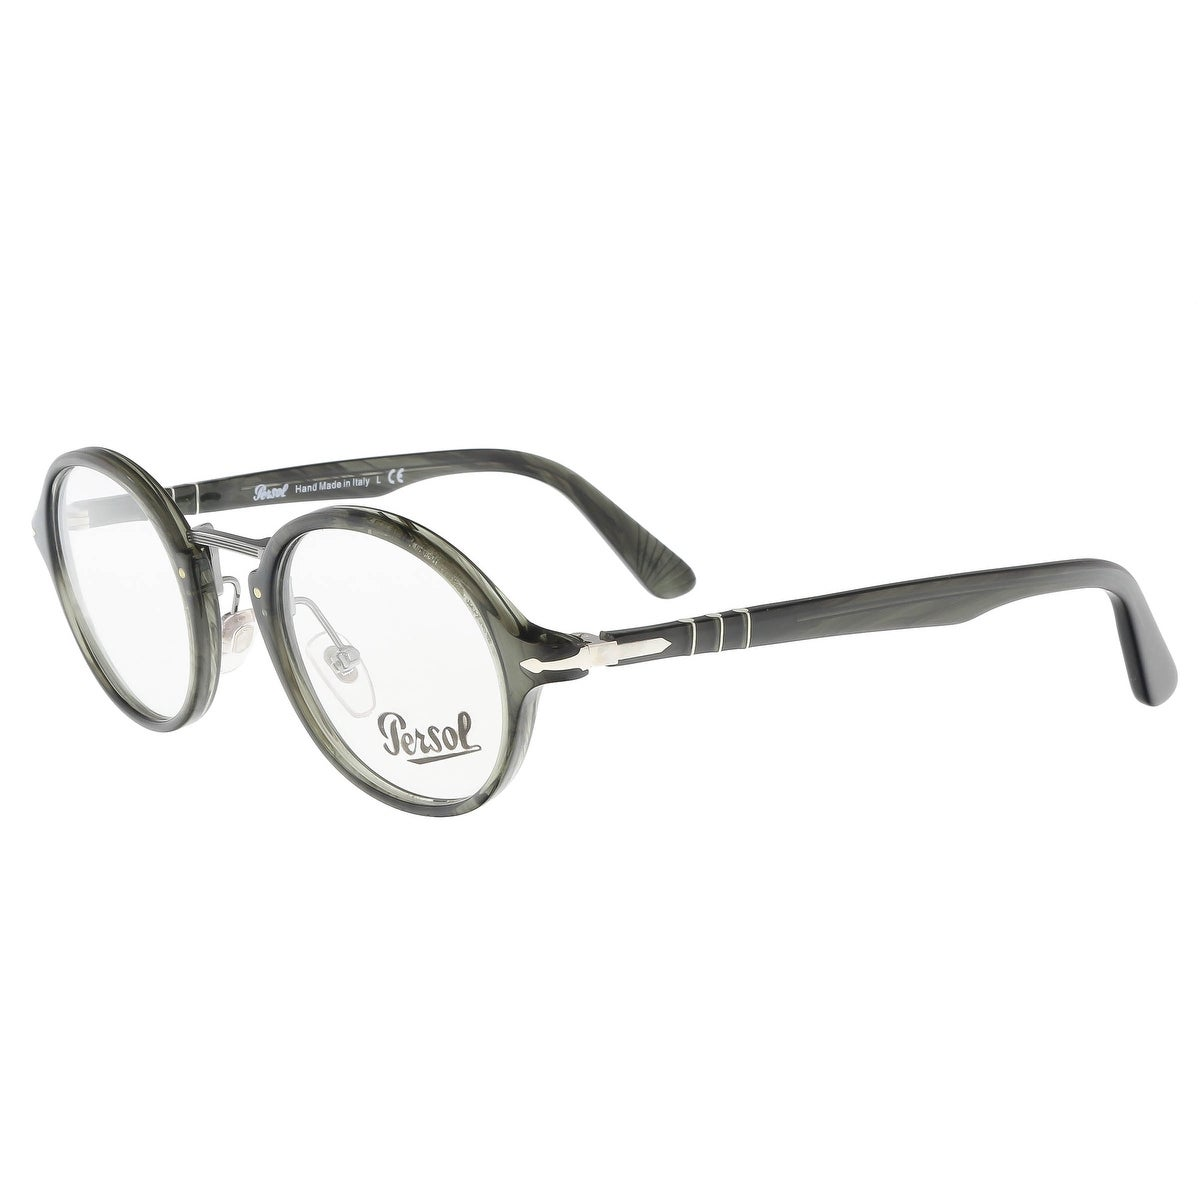 03c20500ede4 Shop Persol PO3128V 1020 Grey Round Optical Frames - 46-22-145 - Free  Shipping Today - Overstock - 20773515